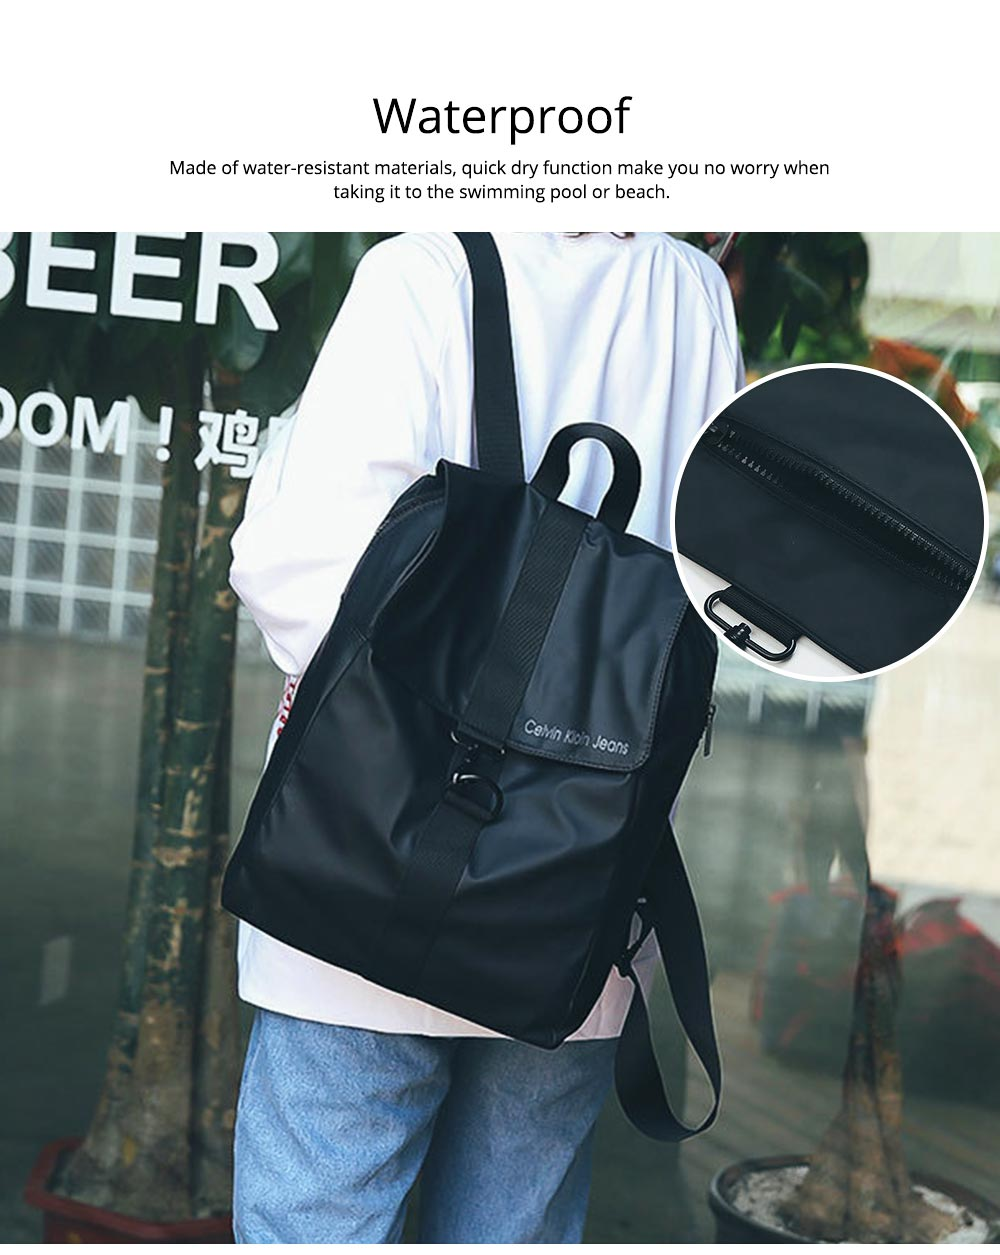 Waterproof Casual Backpack, Lightweight Sackpack with Buckle, Shoulder Bag for Camping, Hiking, Picnic  1